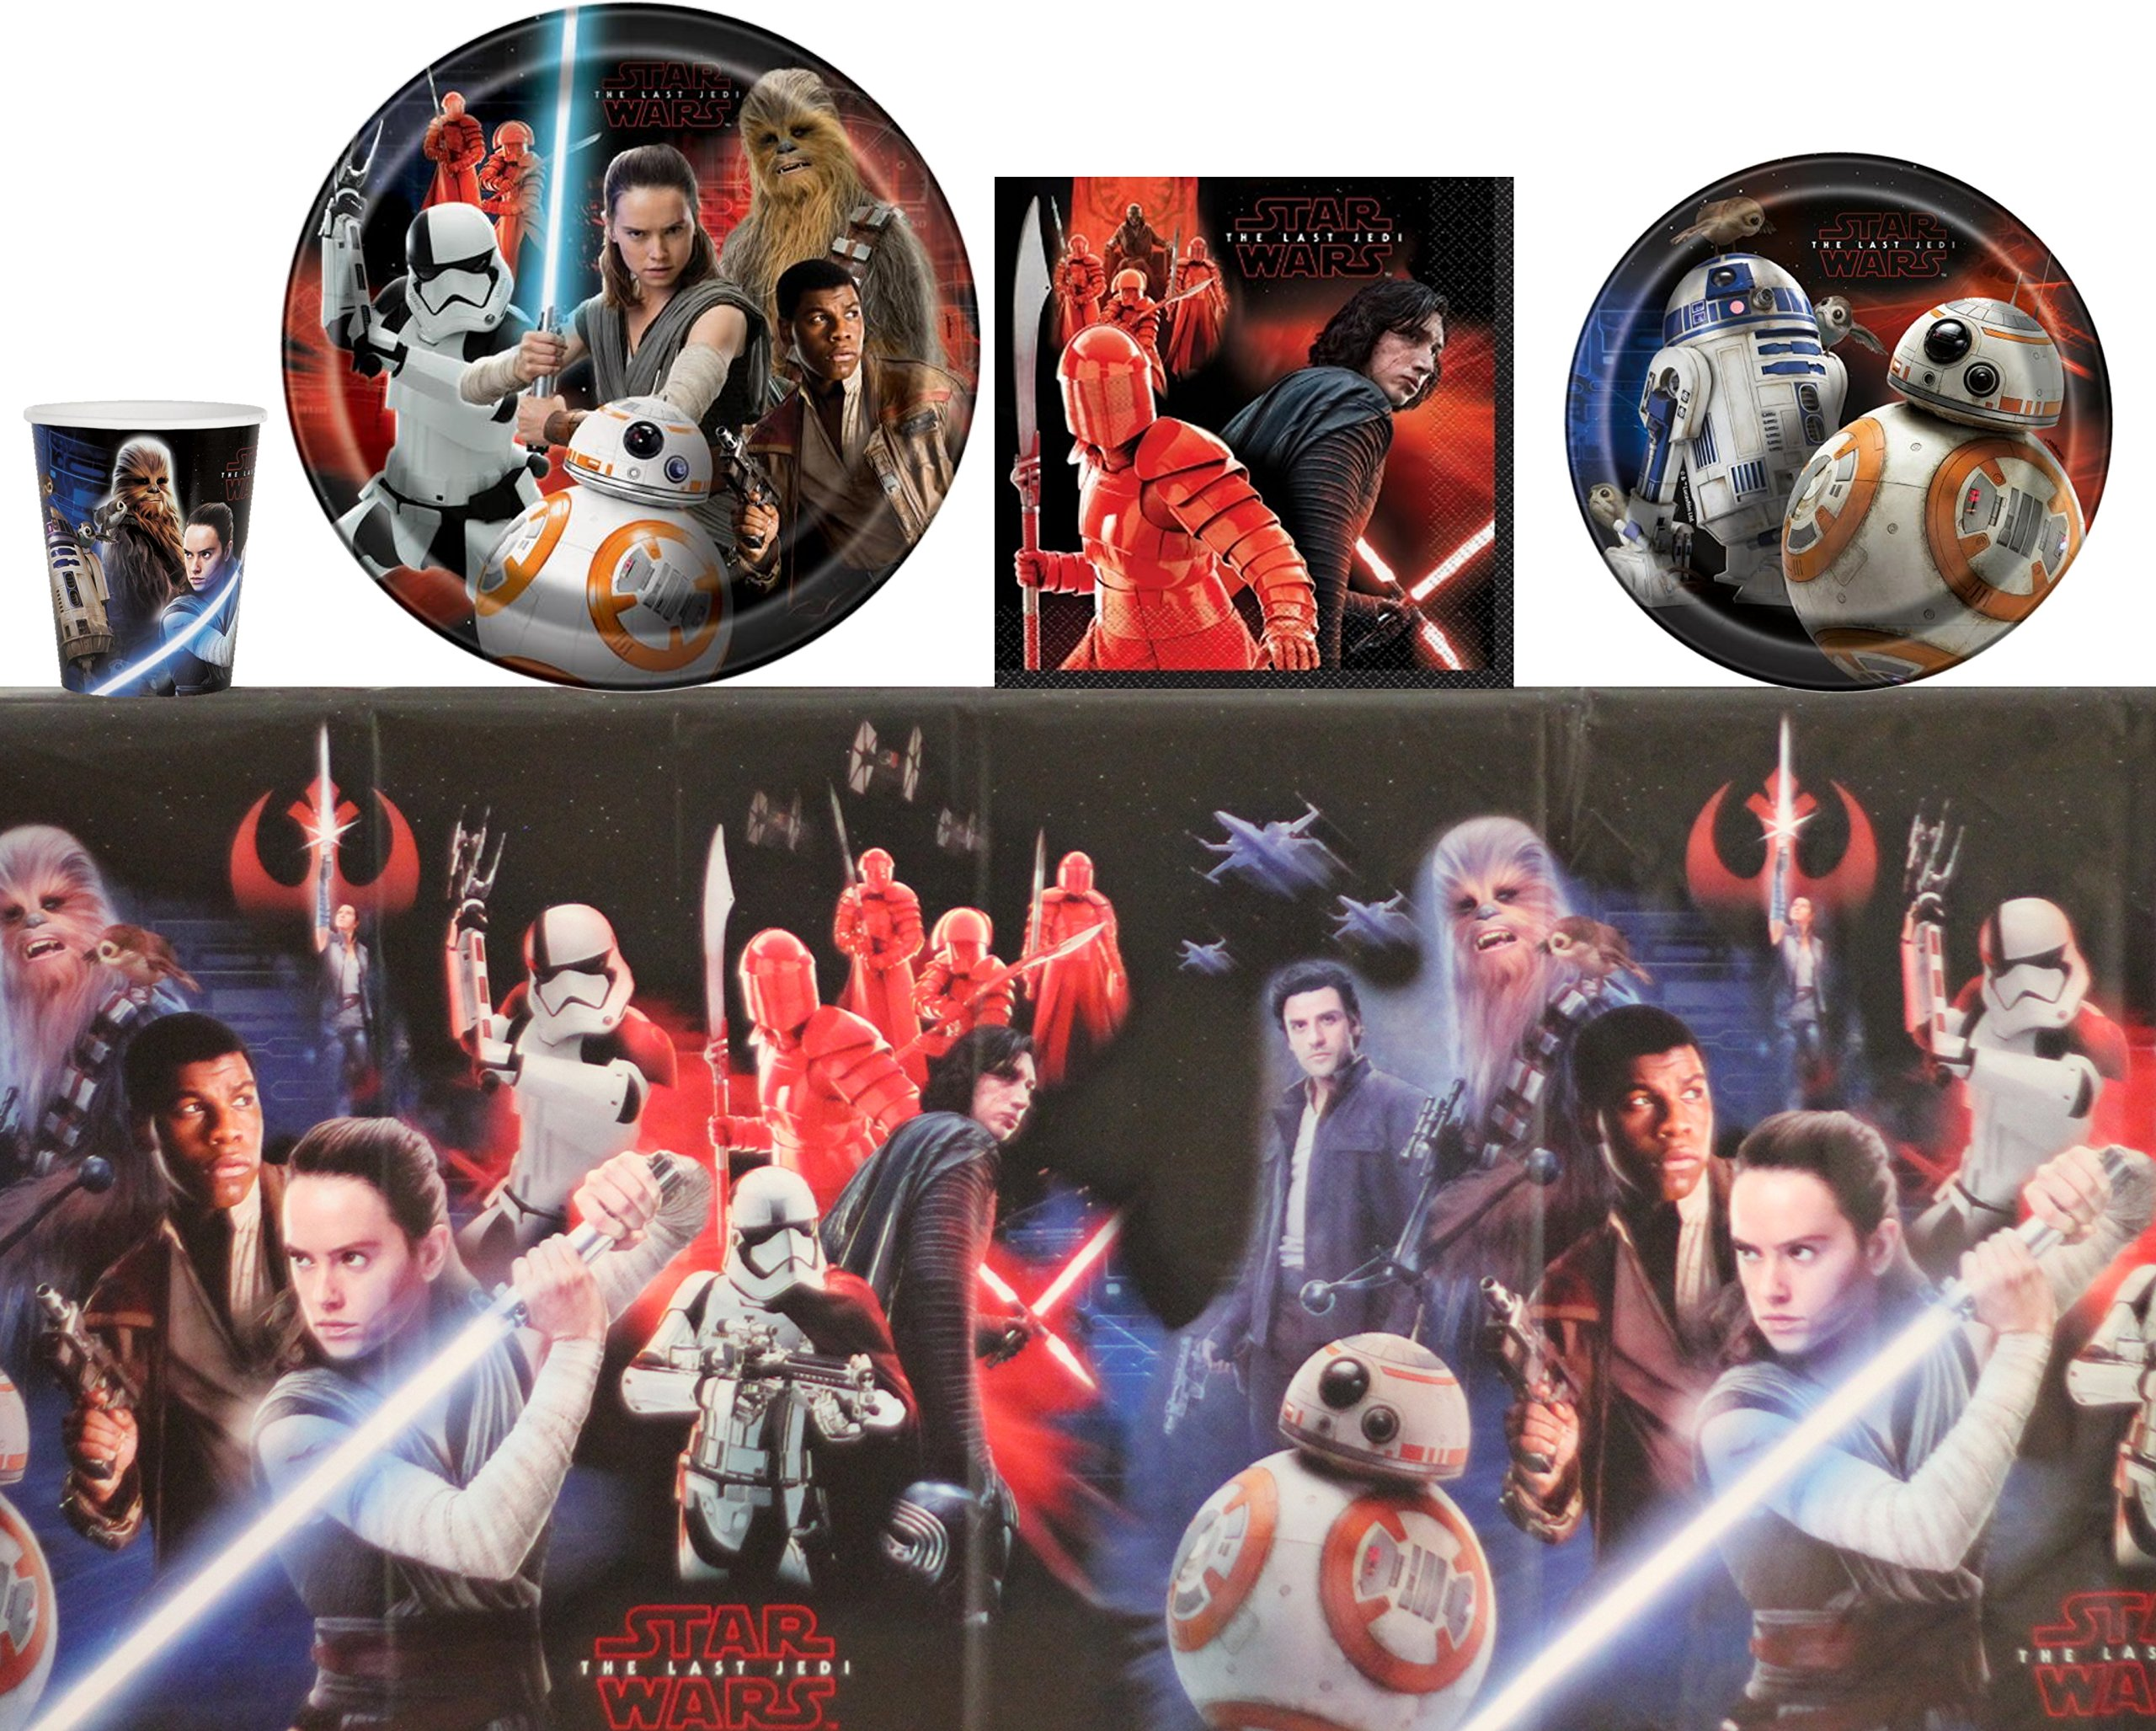 Star Wars Party Supplies: Big and Small Plates, Cups, Napkins, Table Cover - Kit for 16 Guests